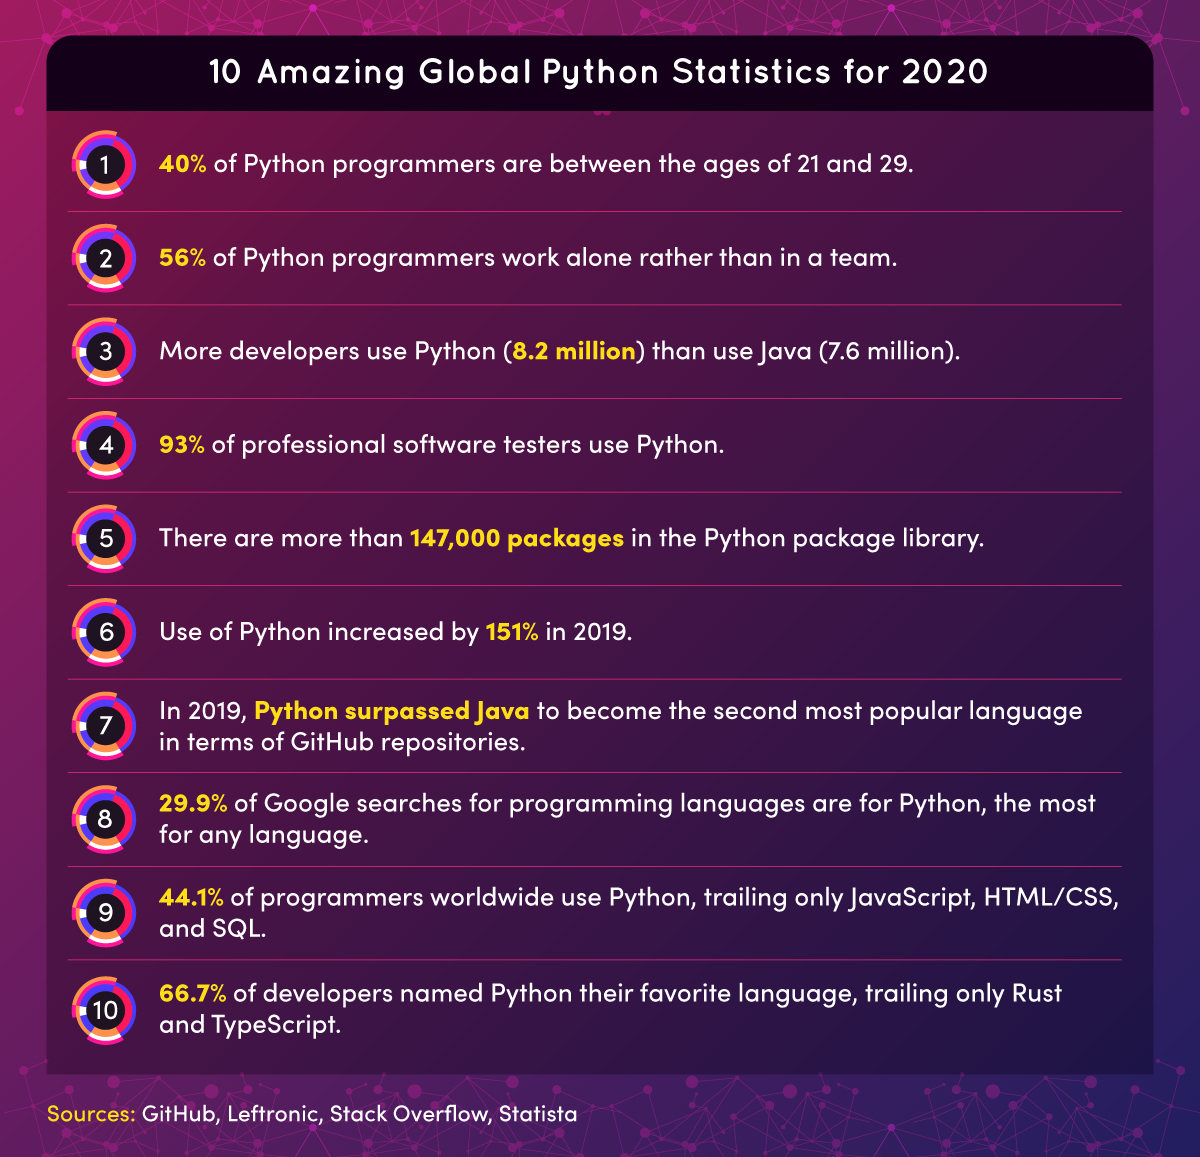 Amazing global python statistics for 2020 include: More developers use Python (8.2 million) than use Java (7.6 million).